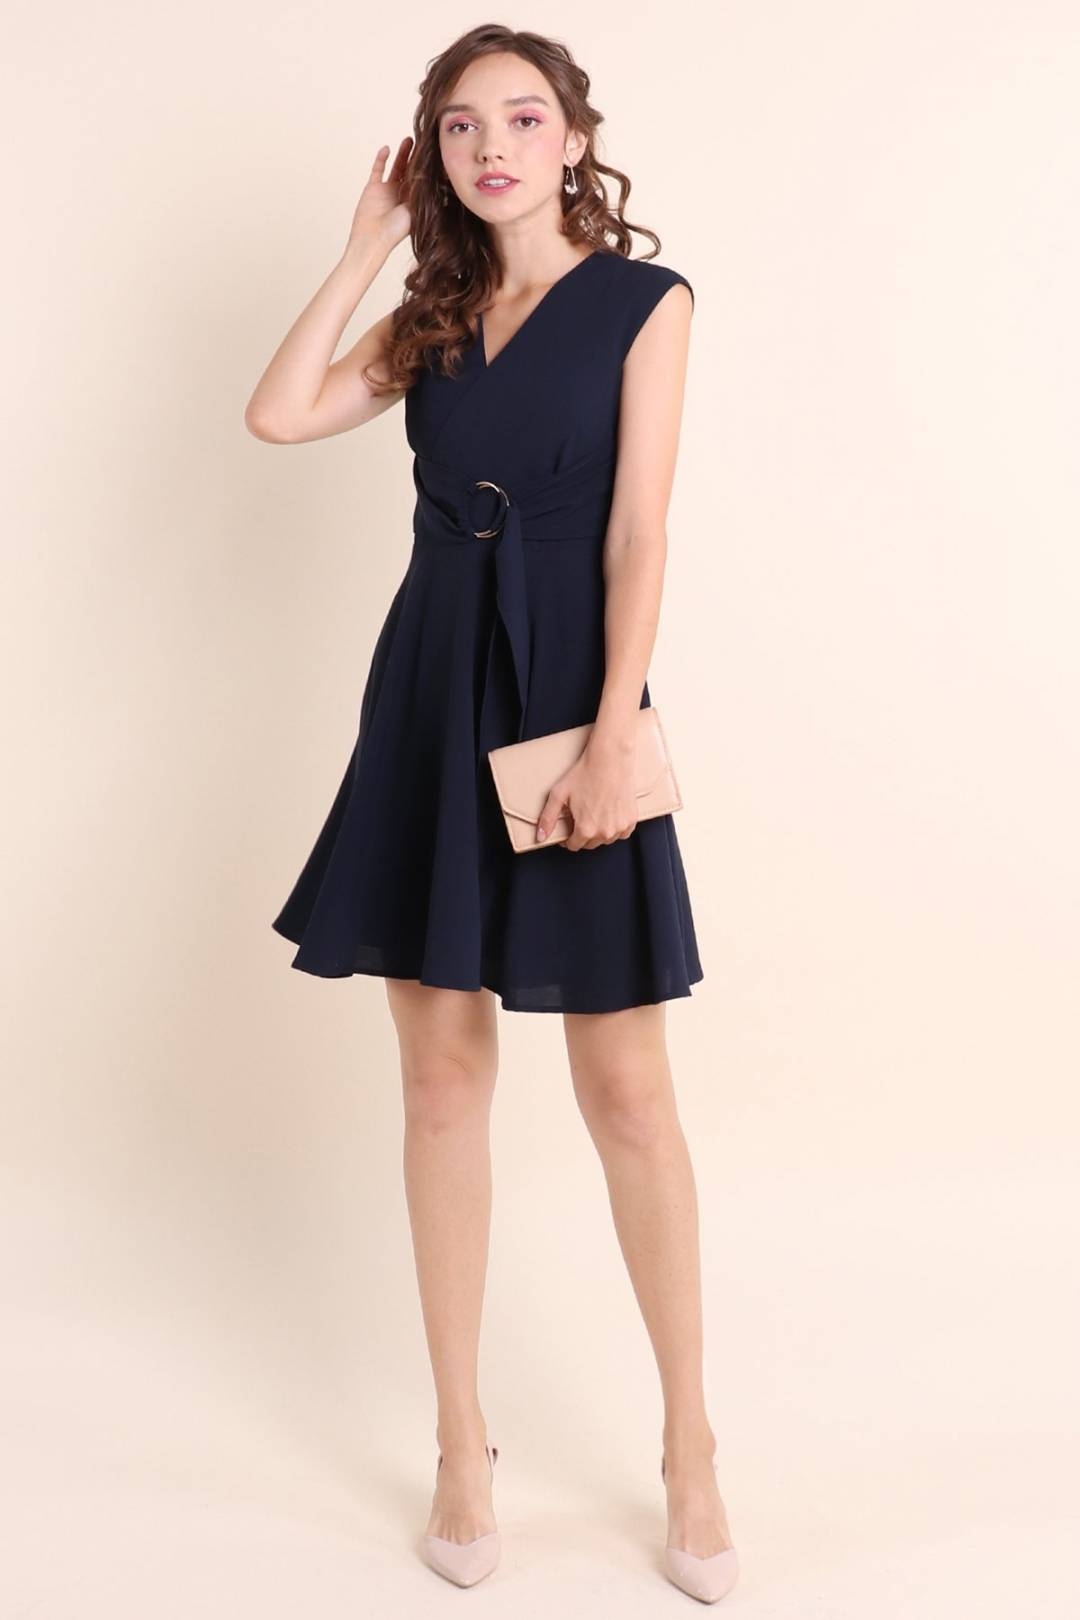 CANDICE RING SASH WORK DRESS IN NAVY [XS/S/M/L/XL]